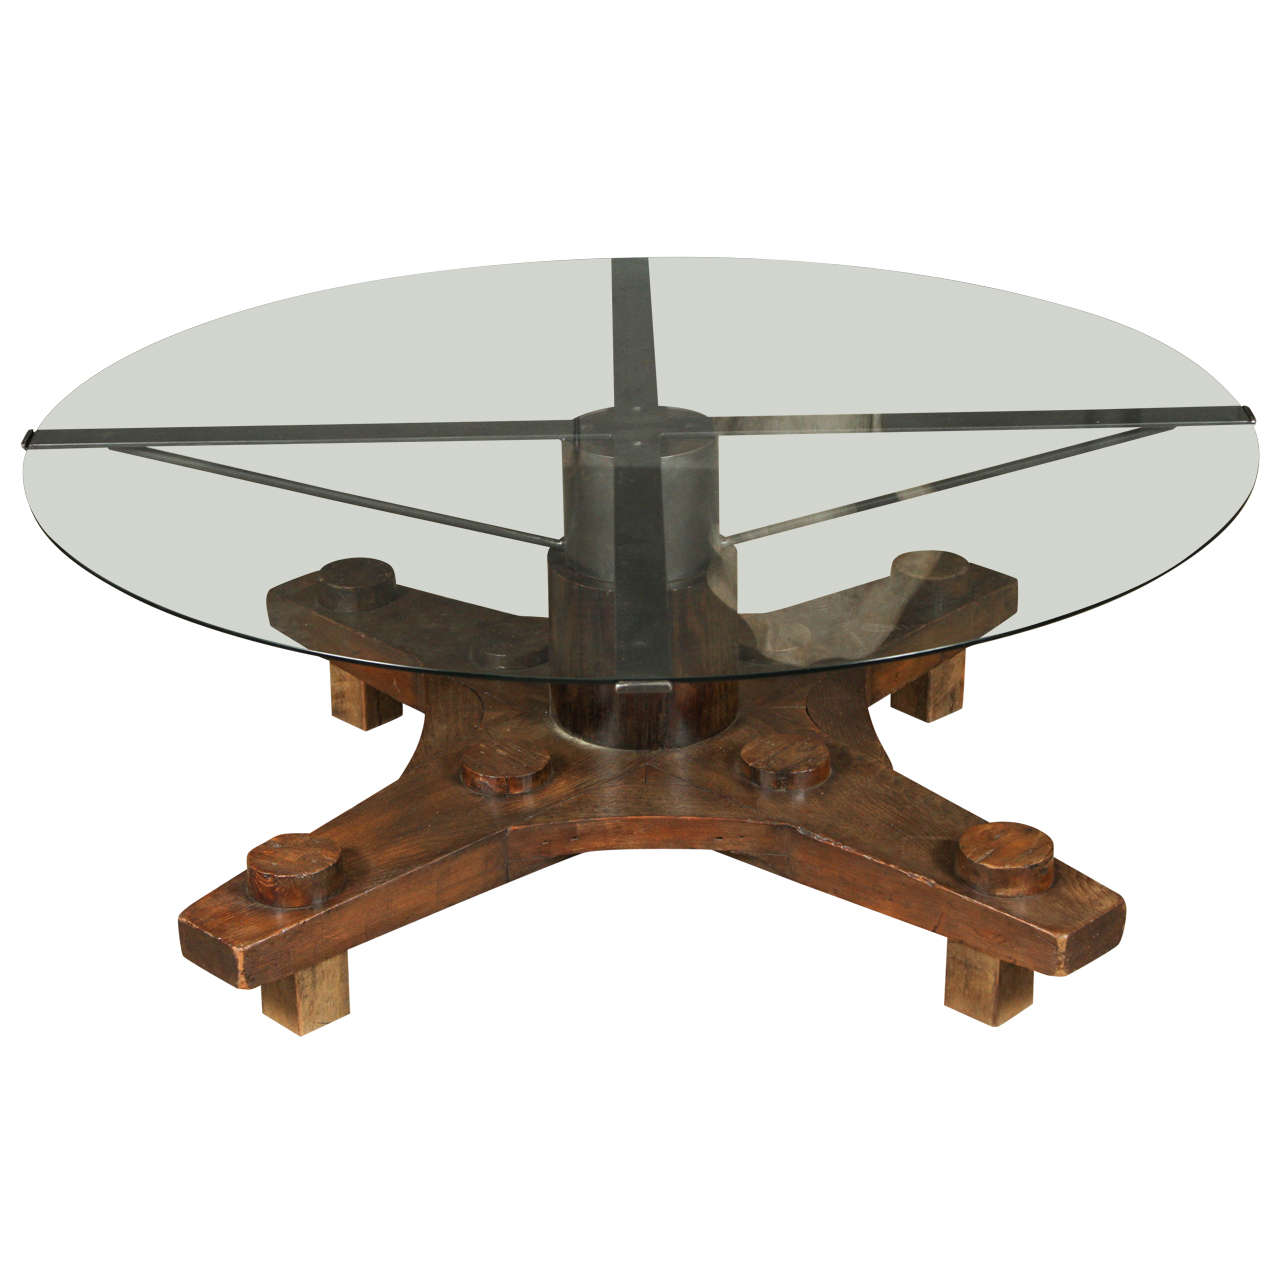 Table From Ship Port Part With Metal Base For Sale At Stdibs - Metal base picnic table